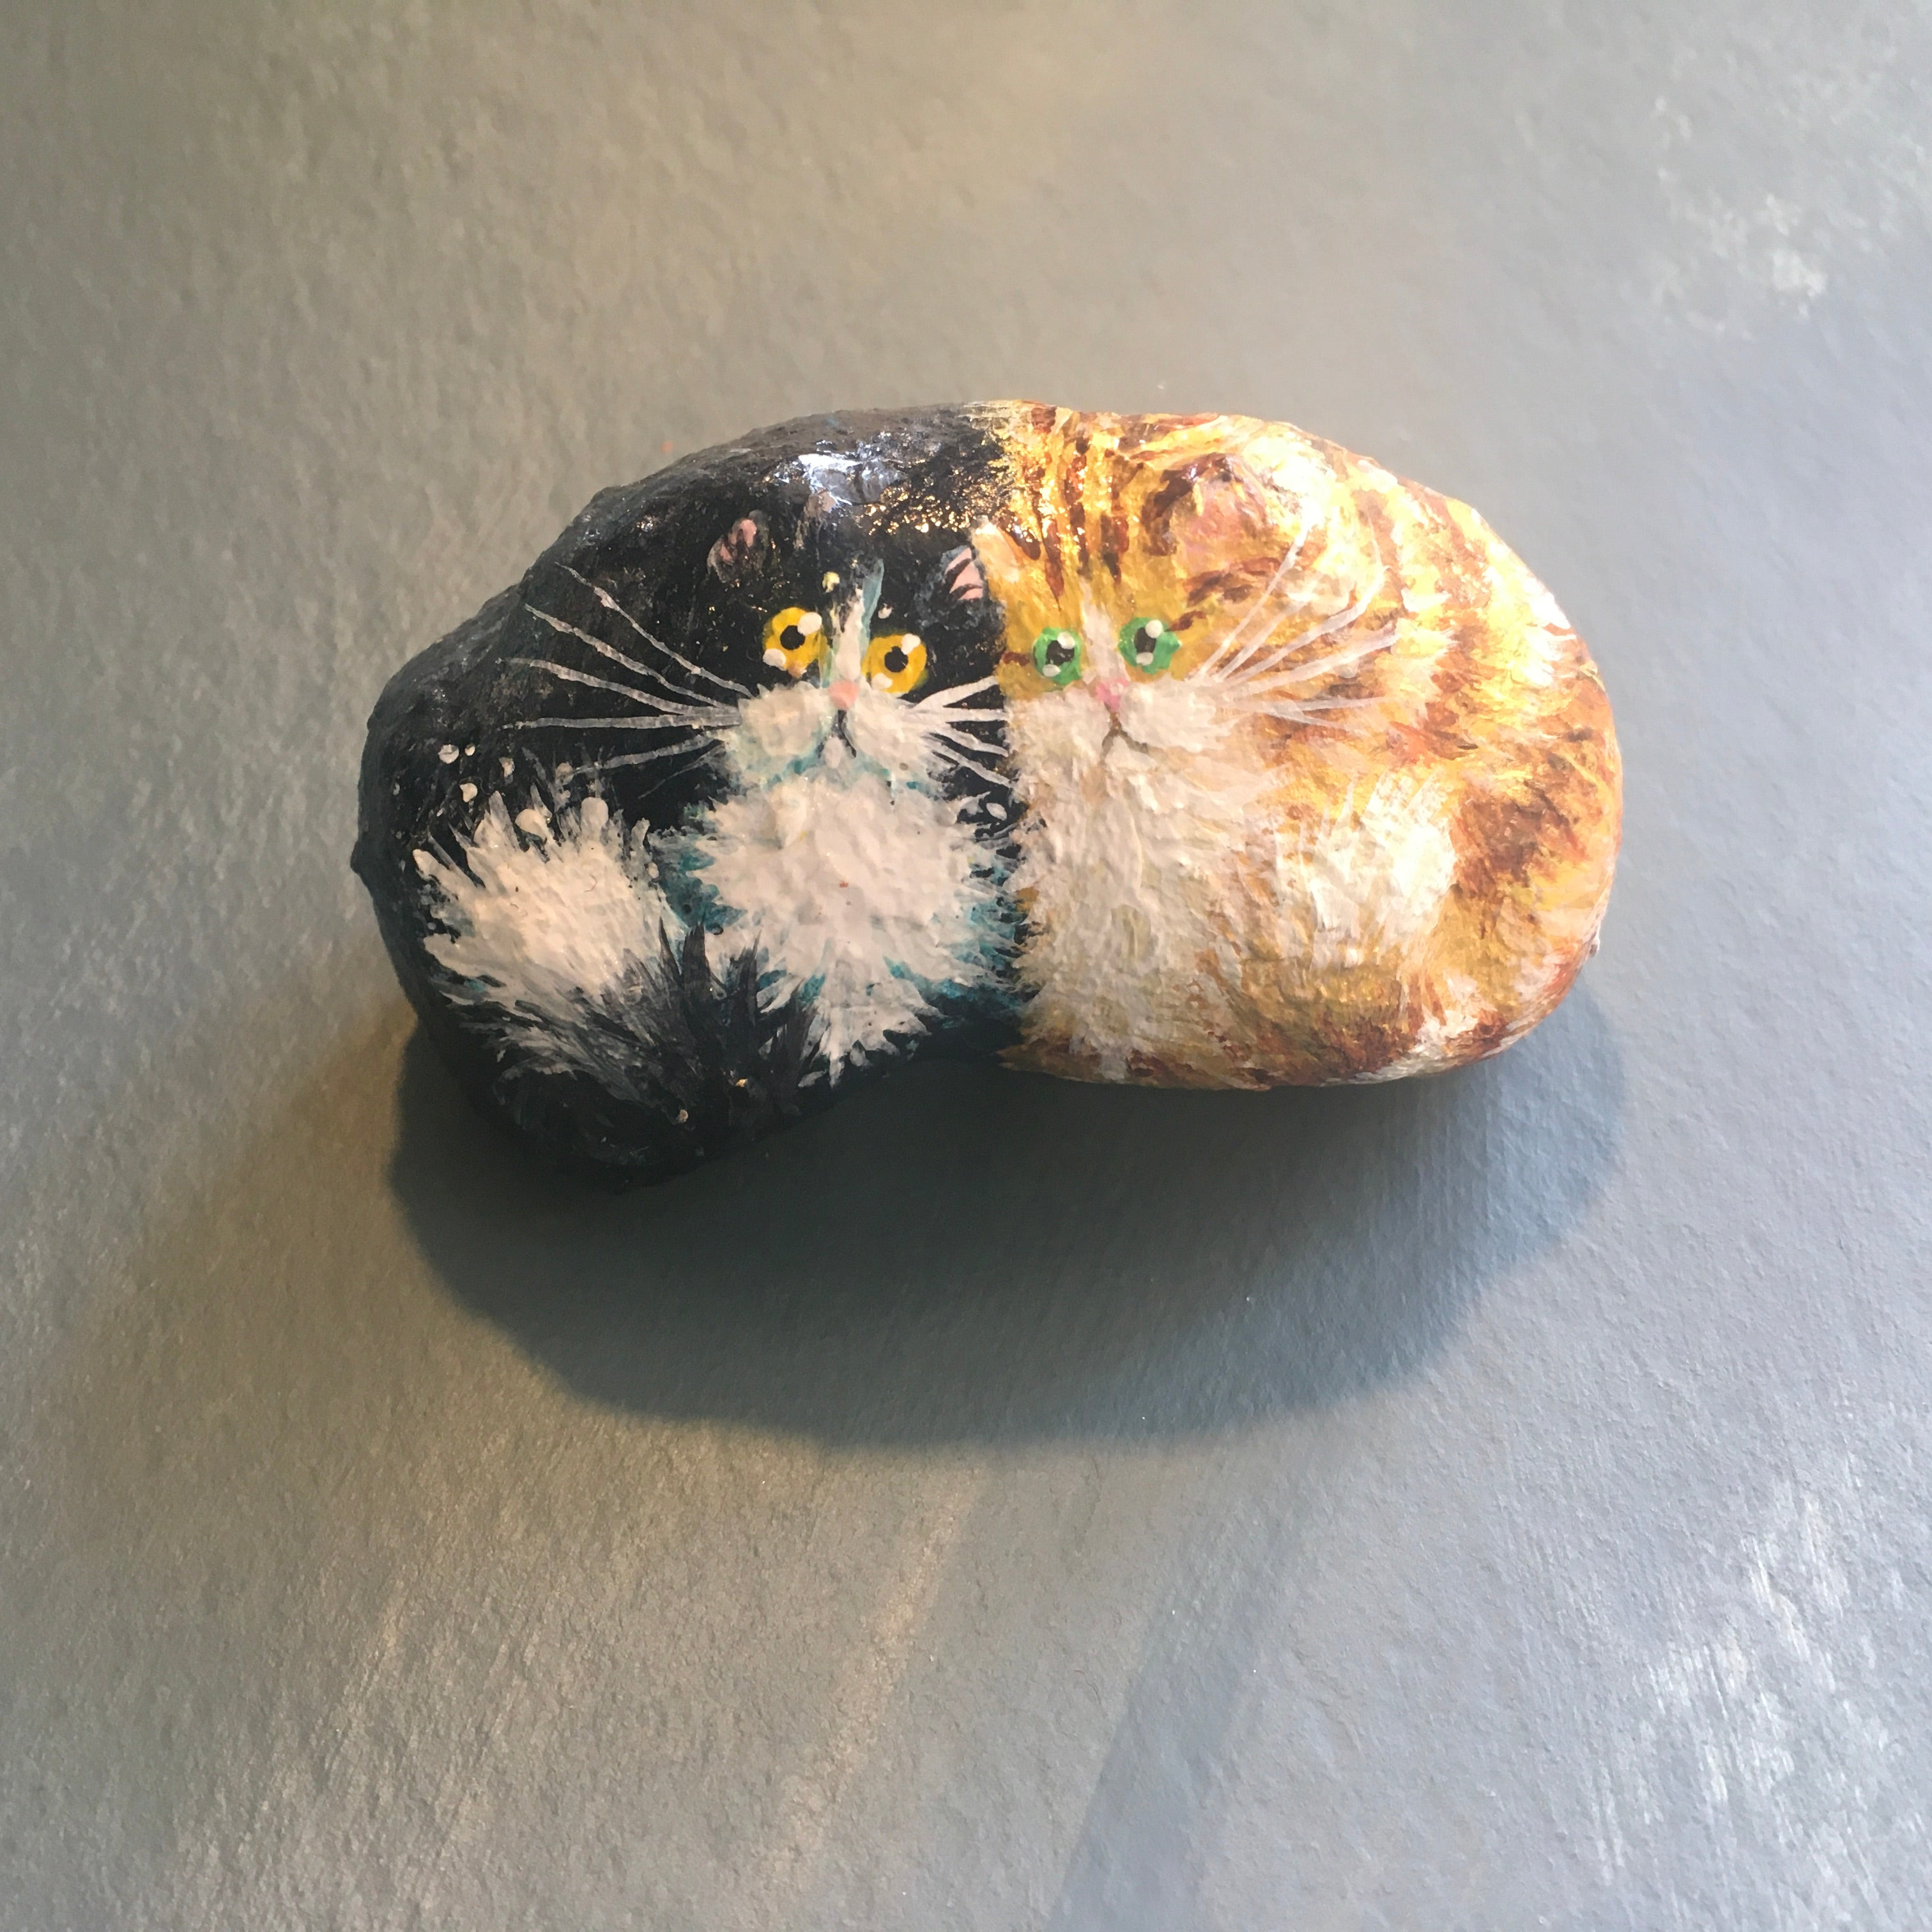 Handmade model of two cats